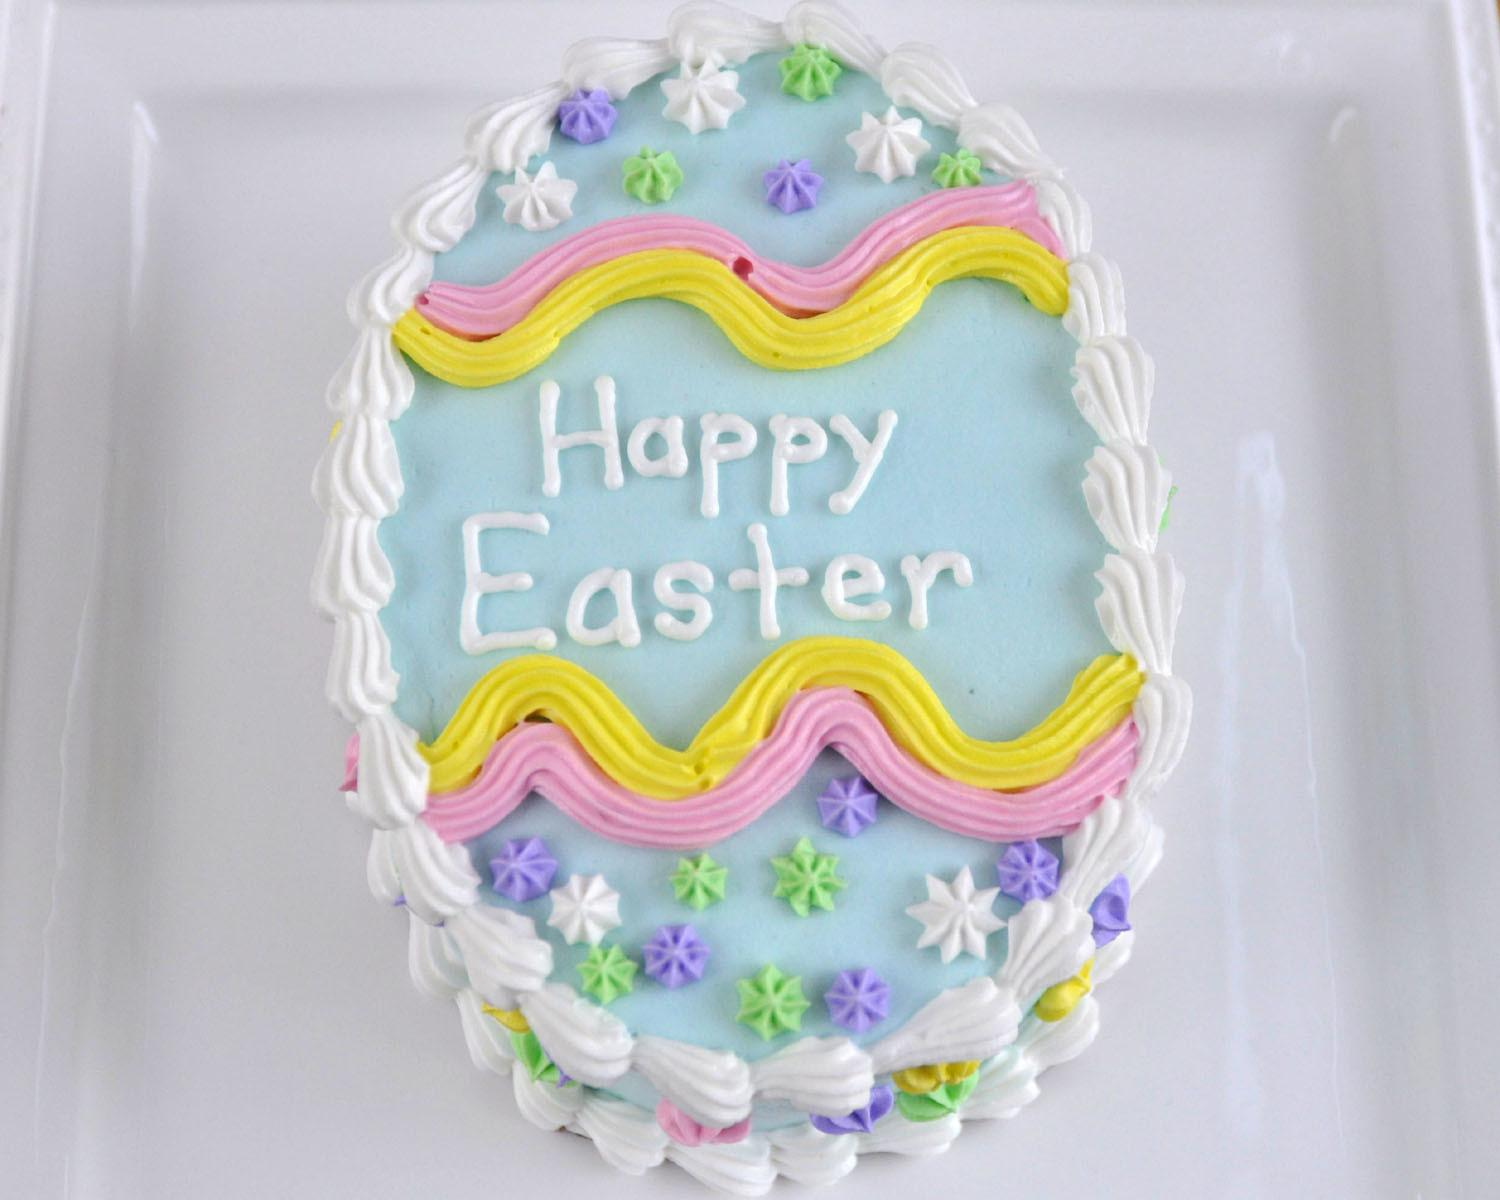 Beki Cook Cake Blog Special Easter Treat Ideas